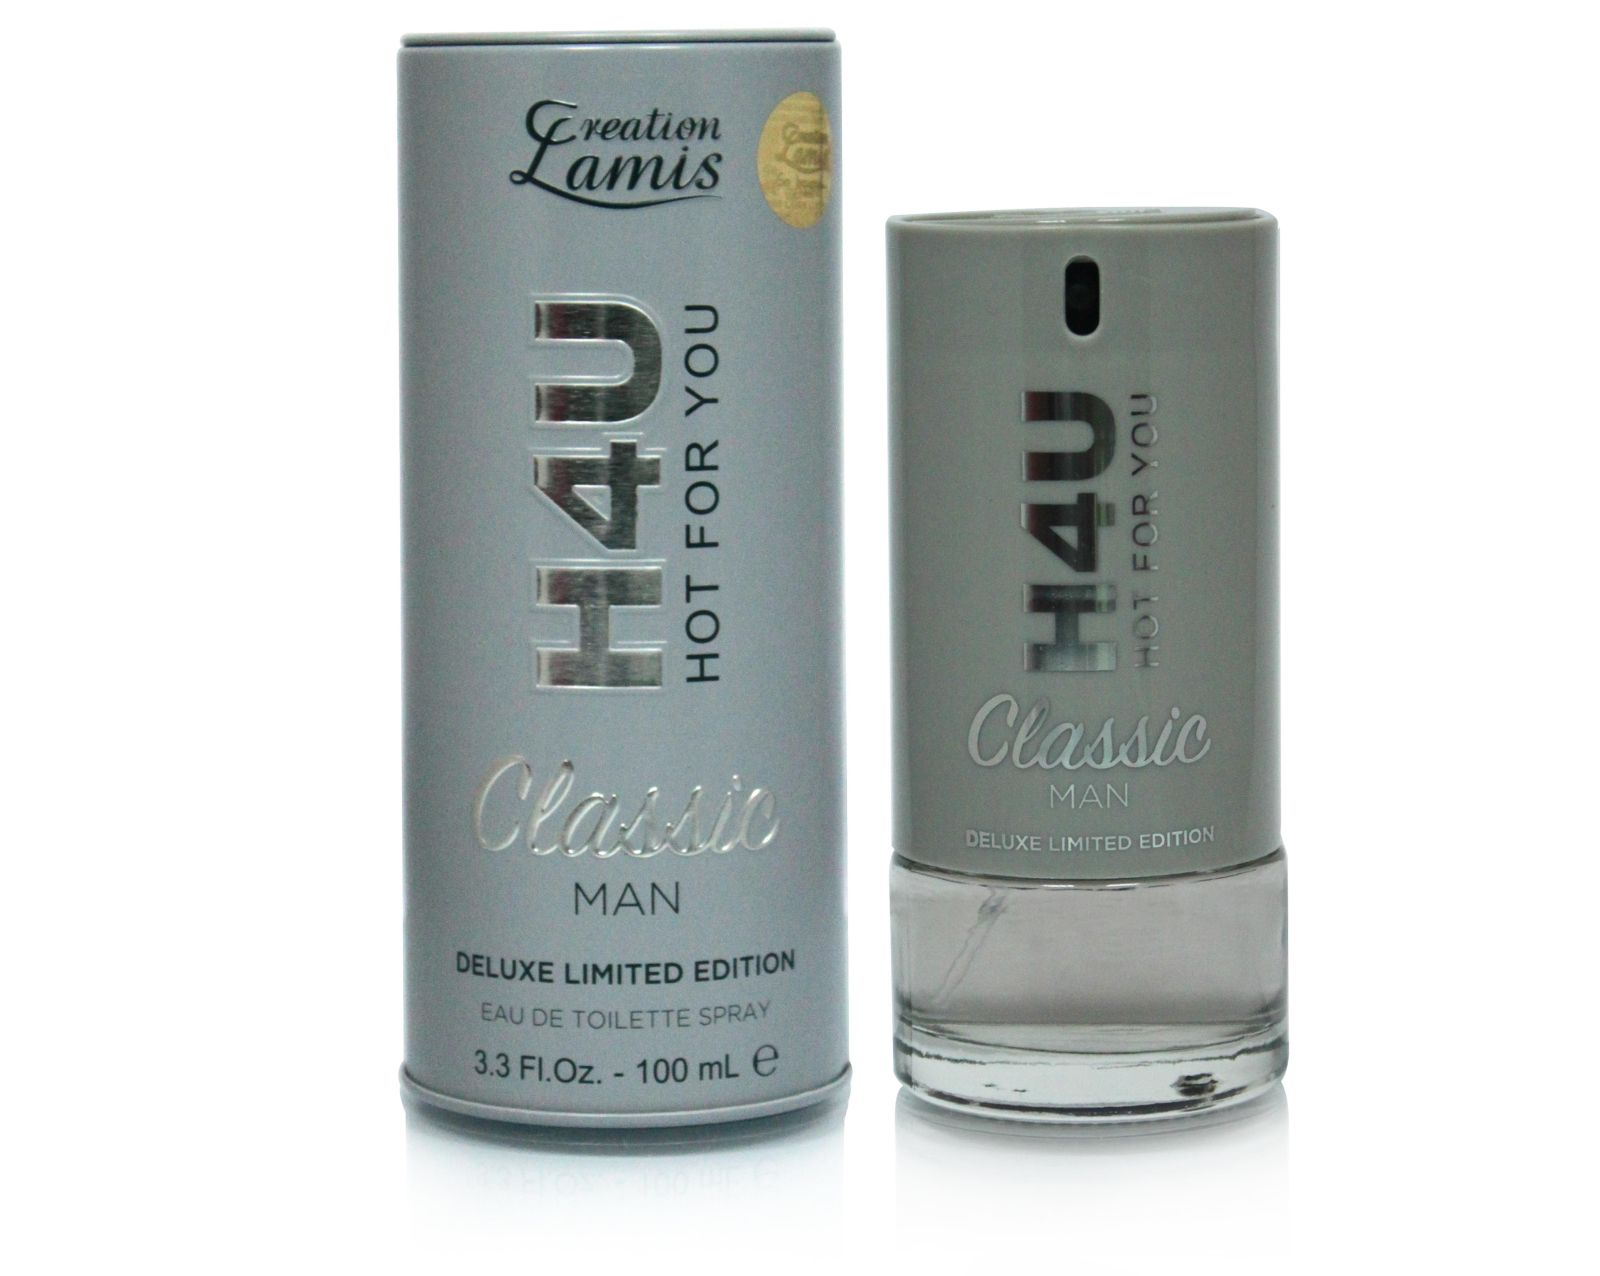 C.LAMIS HOT 4 U CLASSIC parfém 100ml